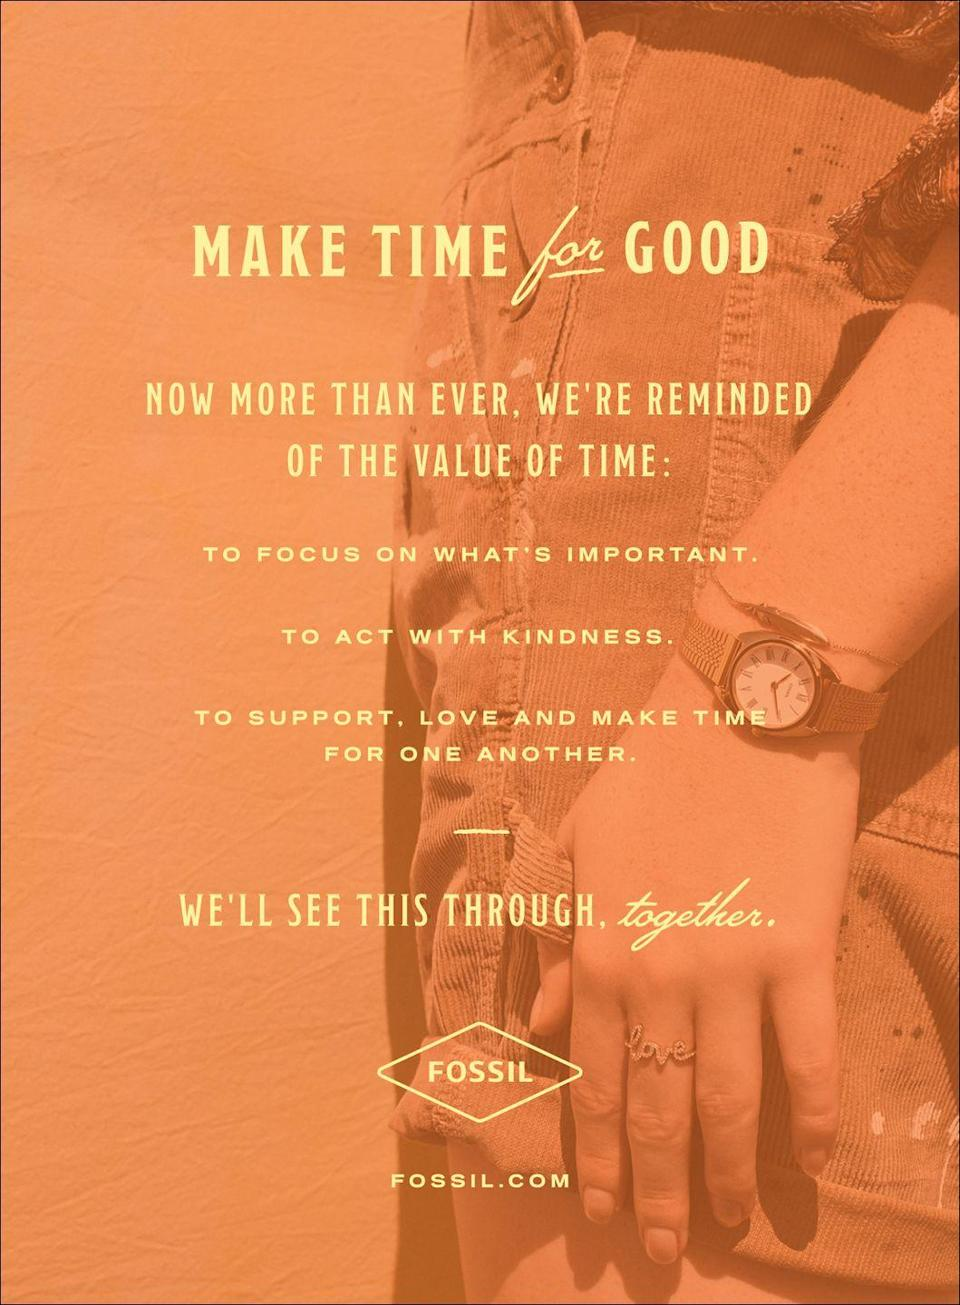 <p>Make time for good. Now more than ever, we're reminded of the value of time:</p><p> To focus on what's important. </p><p>To act with kindness. </p><p>To support, love, and make time for one another. </p><p>We'll see this through, together. </p>